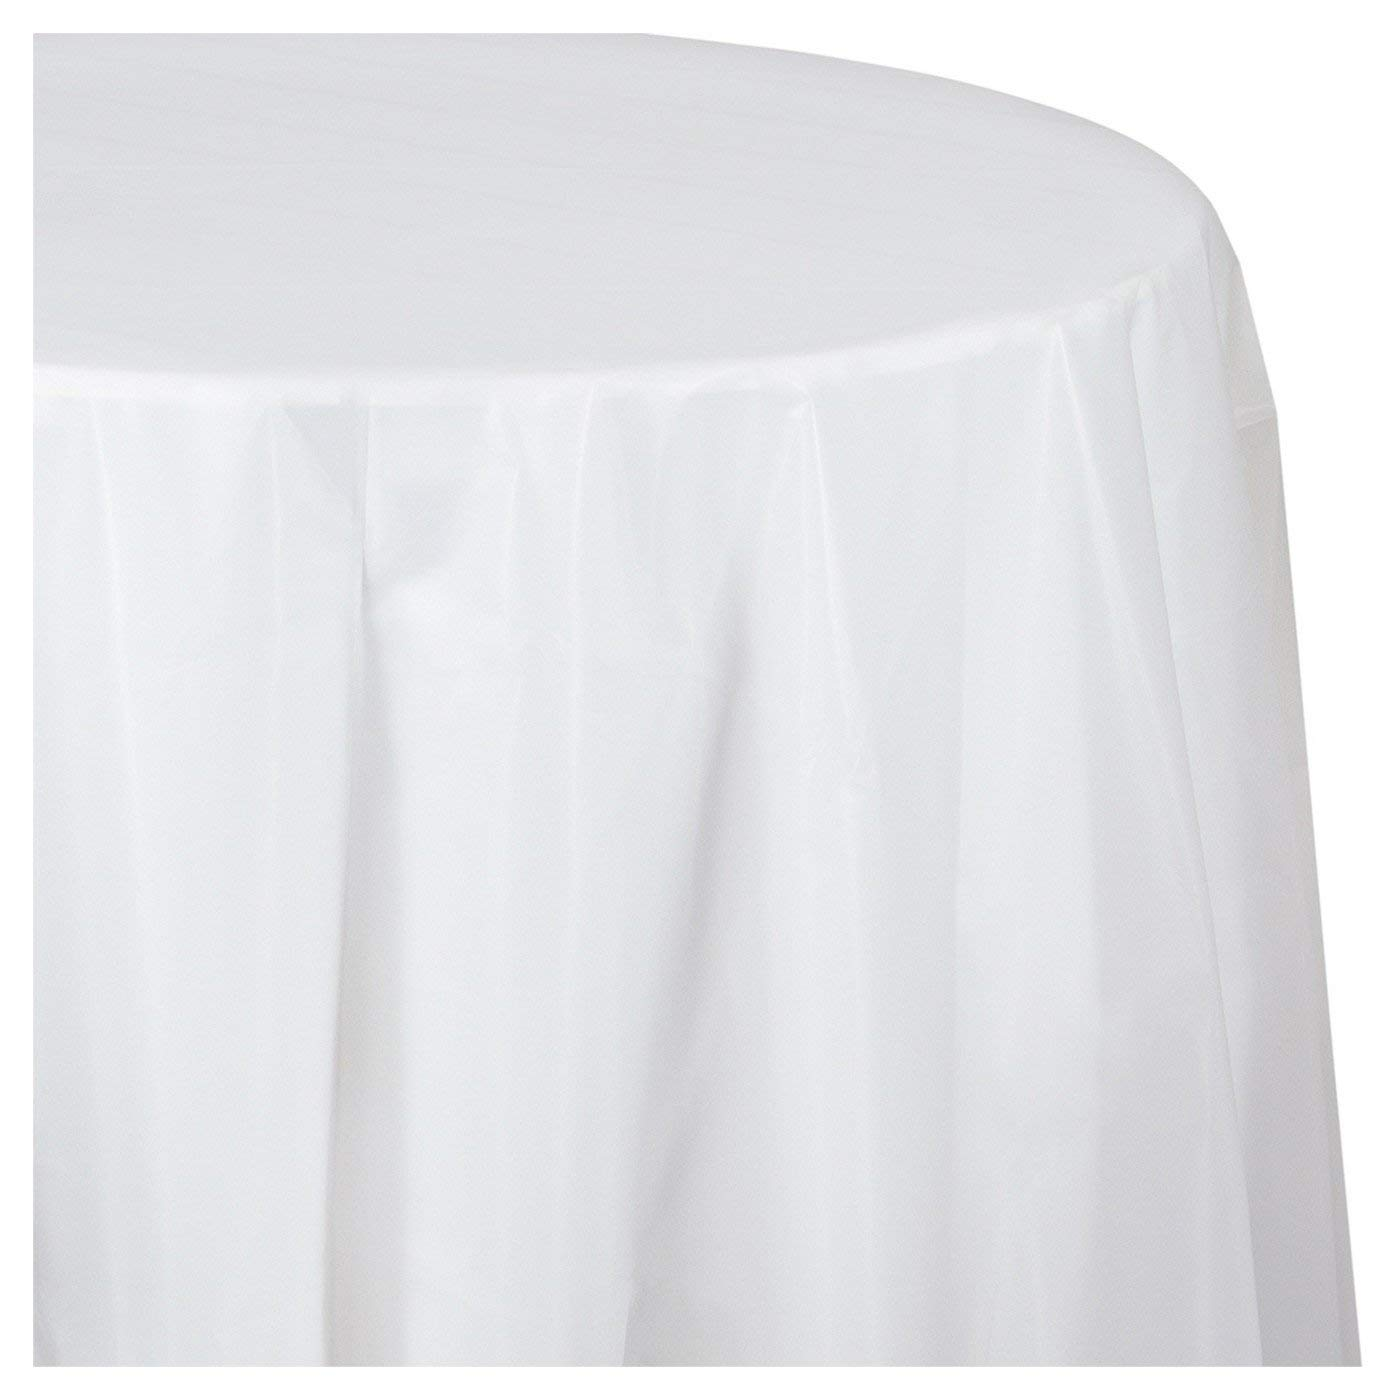 "Mountclear 12-Pack Disposable Plastic Tablecloths - 84"" Inch Round Table Cloth – Ideal Round Table Covers for Any Tables Upto 6 Feet Long – Easy Clean-up of Post-Event Mess (12, White)"